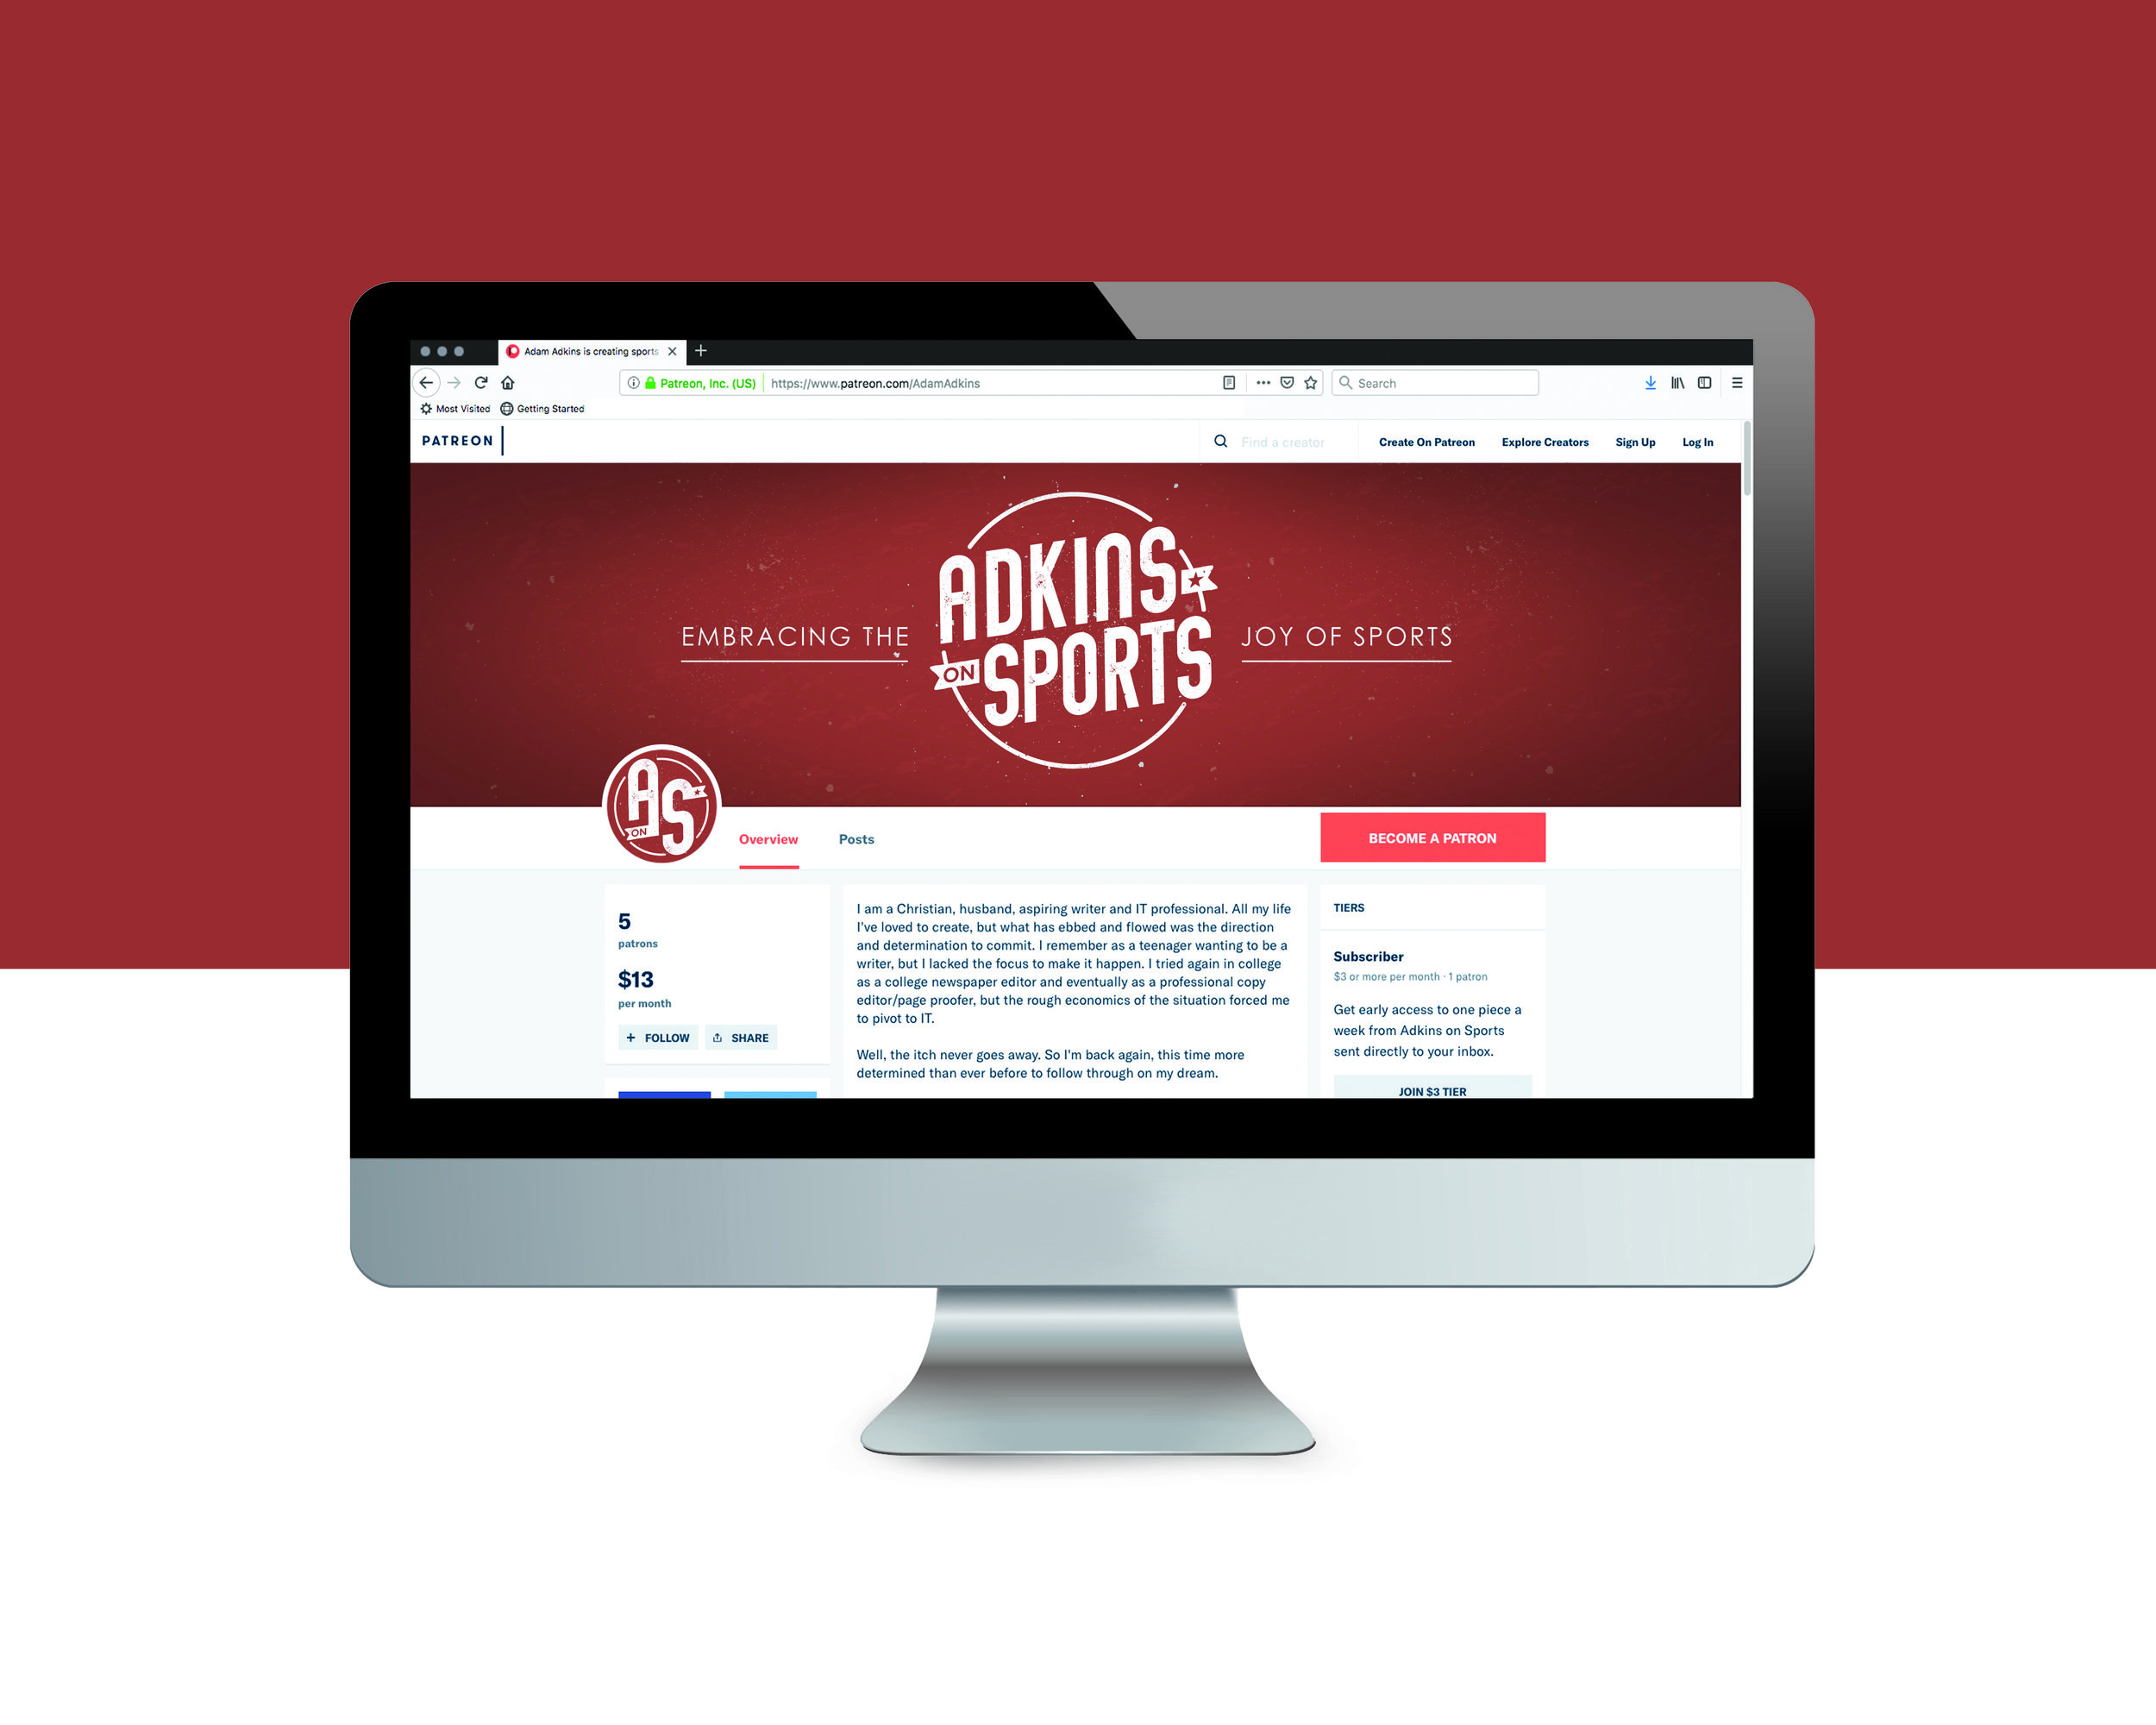 Adkins on Sports, a catch-all blog of the sporting world, has a fresh new look applied to their Wordpress, Patreon and social media sites.